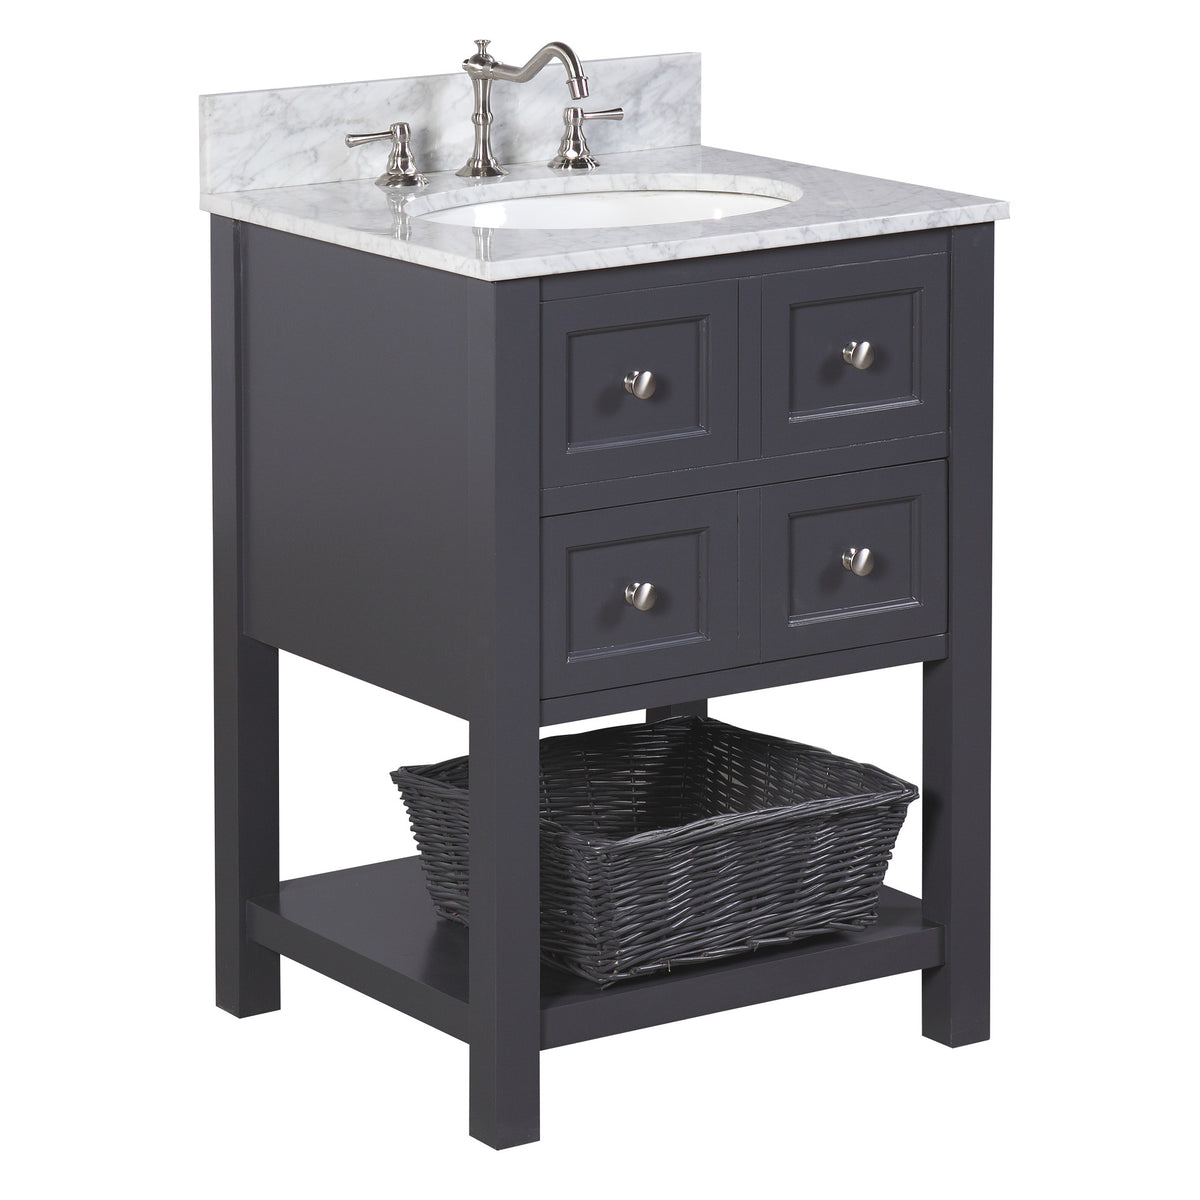 New Yorker 24 Inch Vanity Carrara Charcoal Gray Kitchenbathcollection